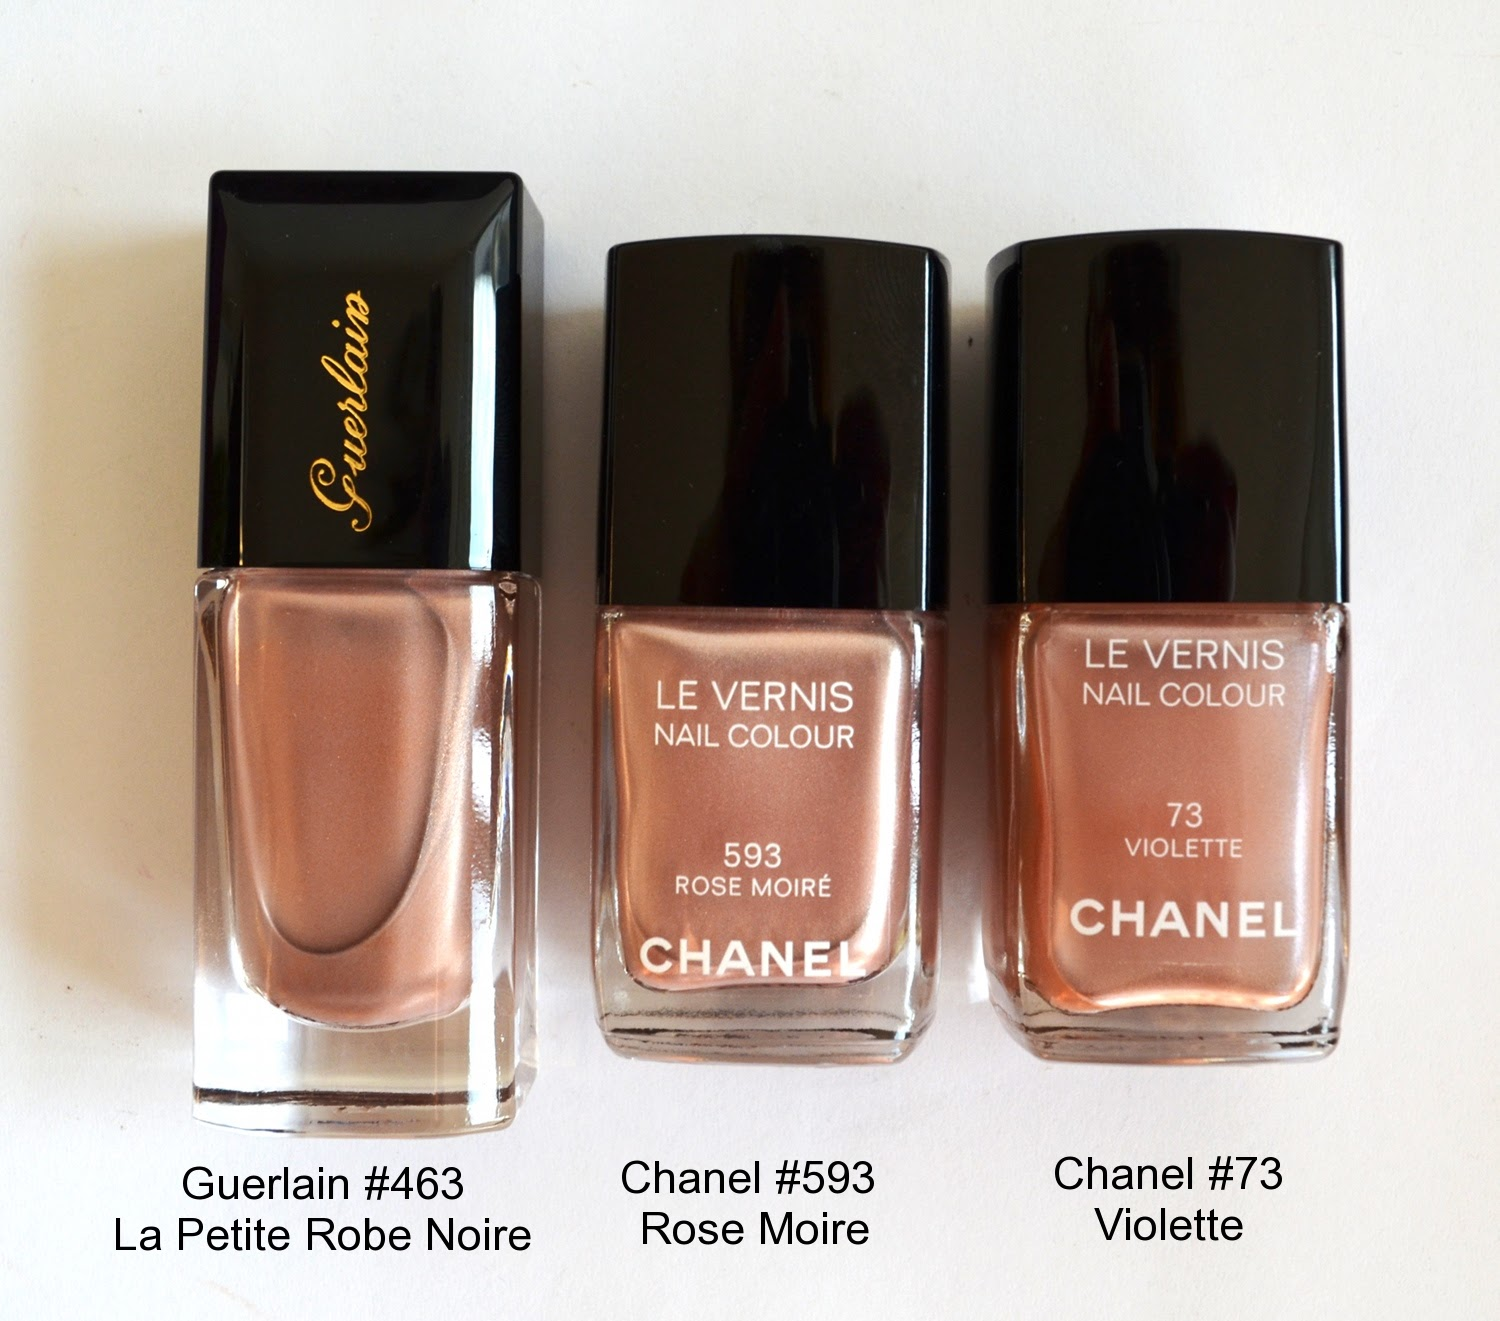 chanel le vernis 593 rose moire vs guerlain la laque couleur 463 la petite robe noire color. Black Bedroom Furniture Sets. Home Design Ideas